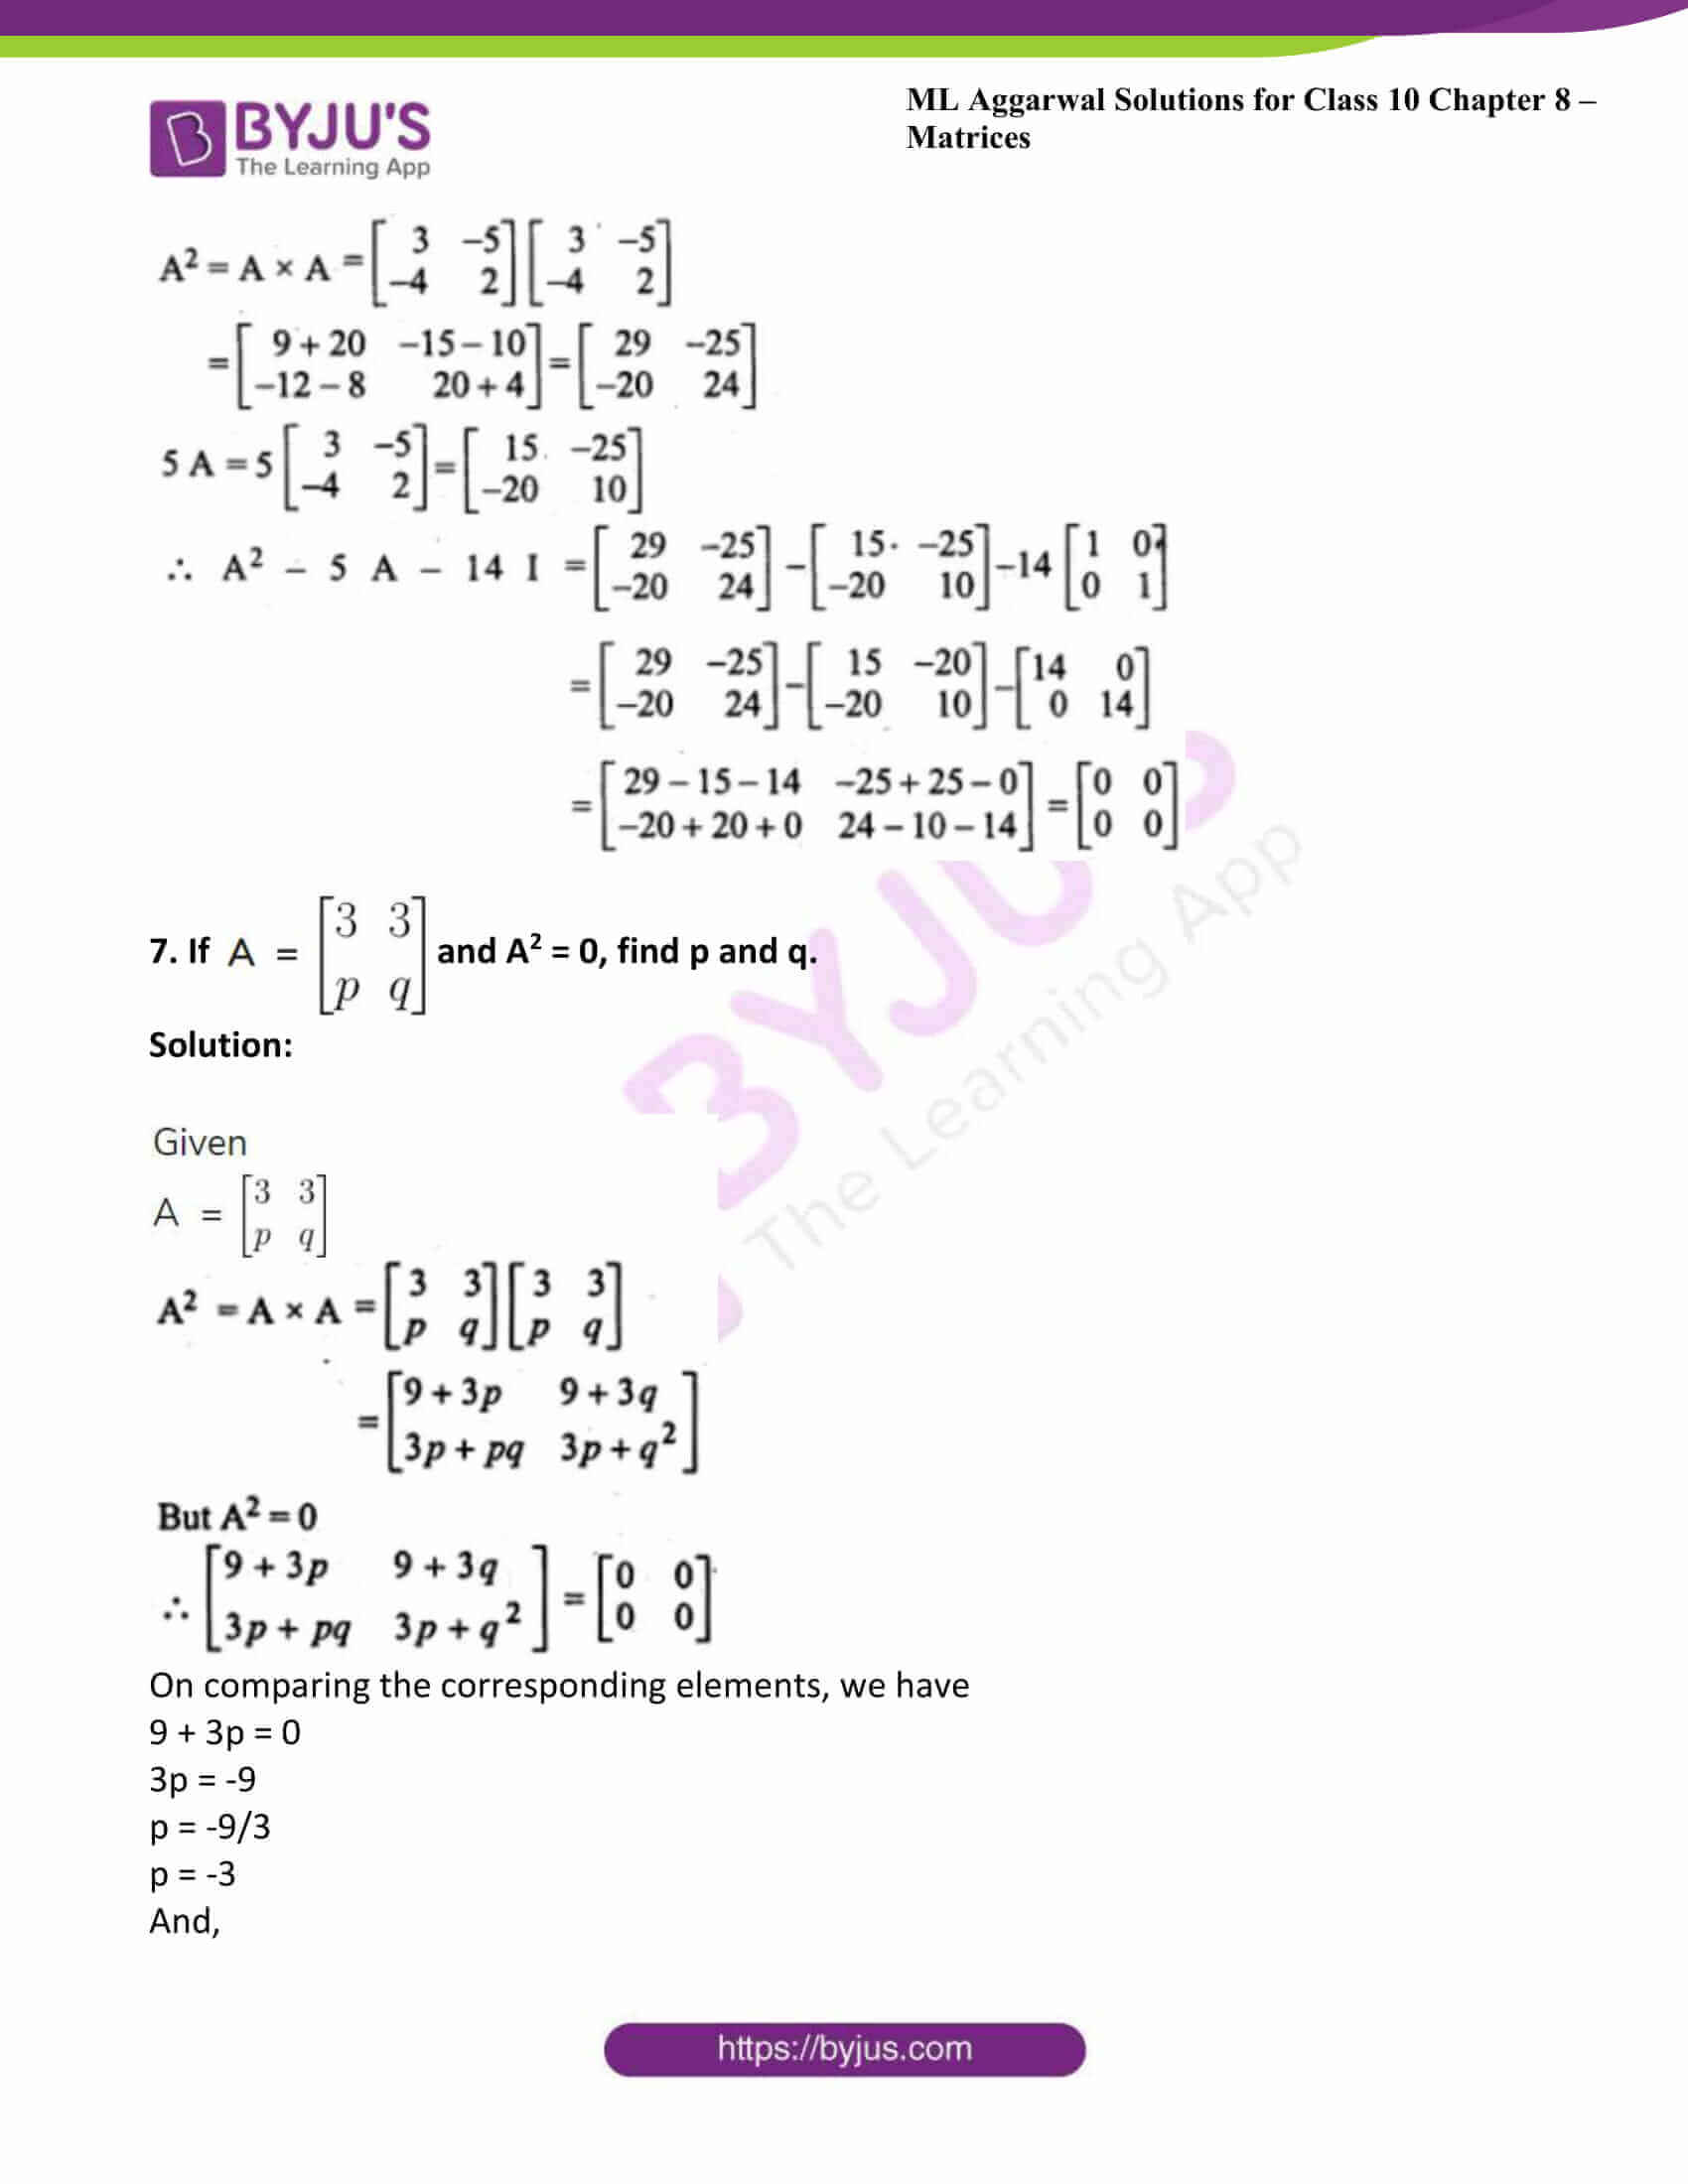 ml aggarwal solutions class 10 maths chapter 8 39